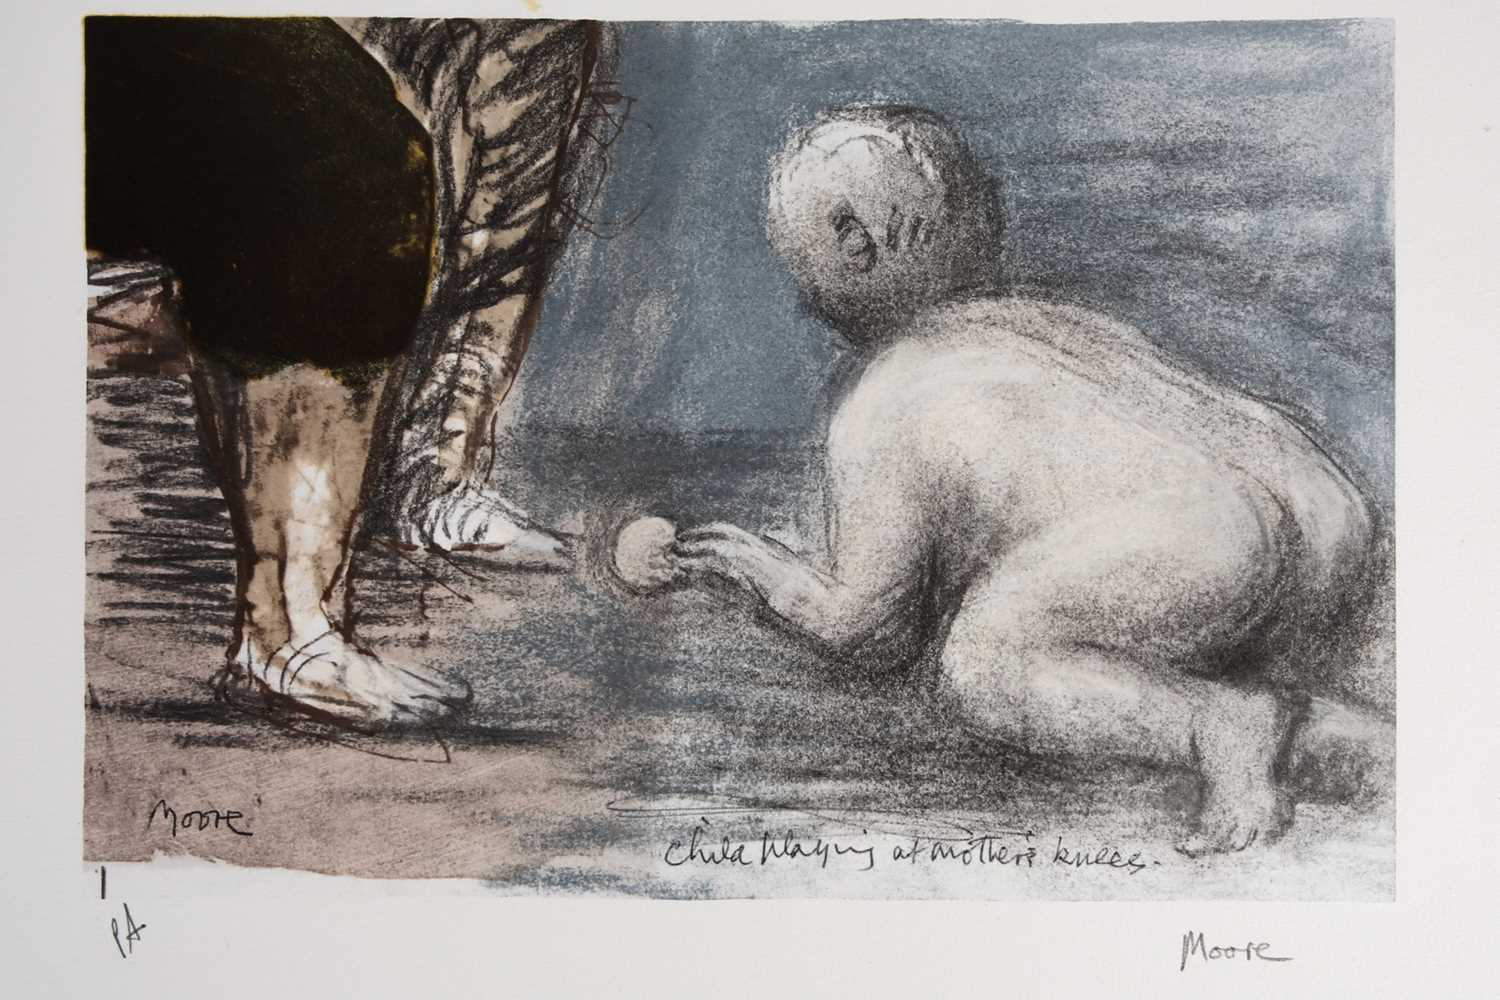 Henry Moore Child Playing at Mother's Knees lithographic print